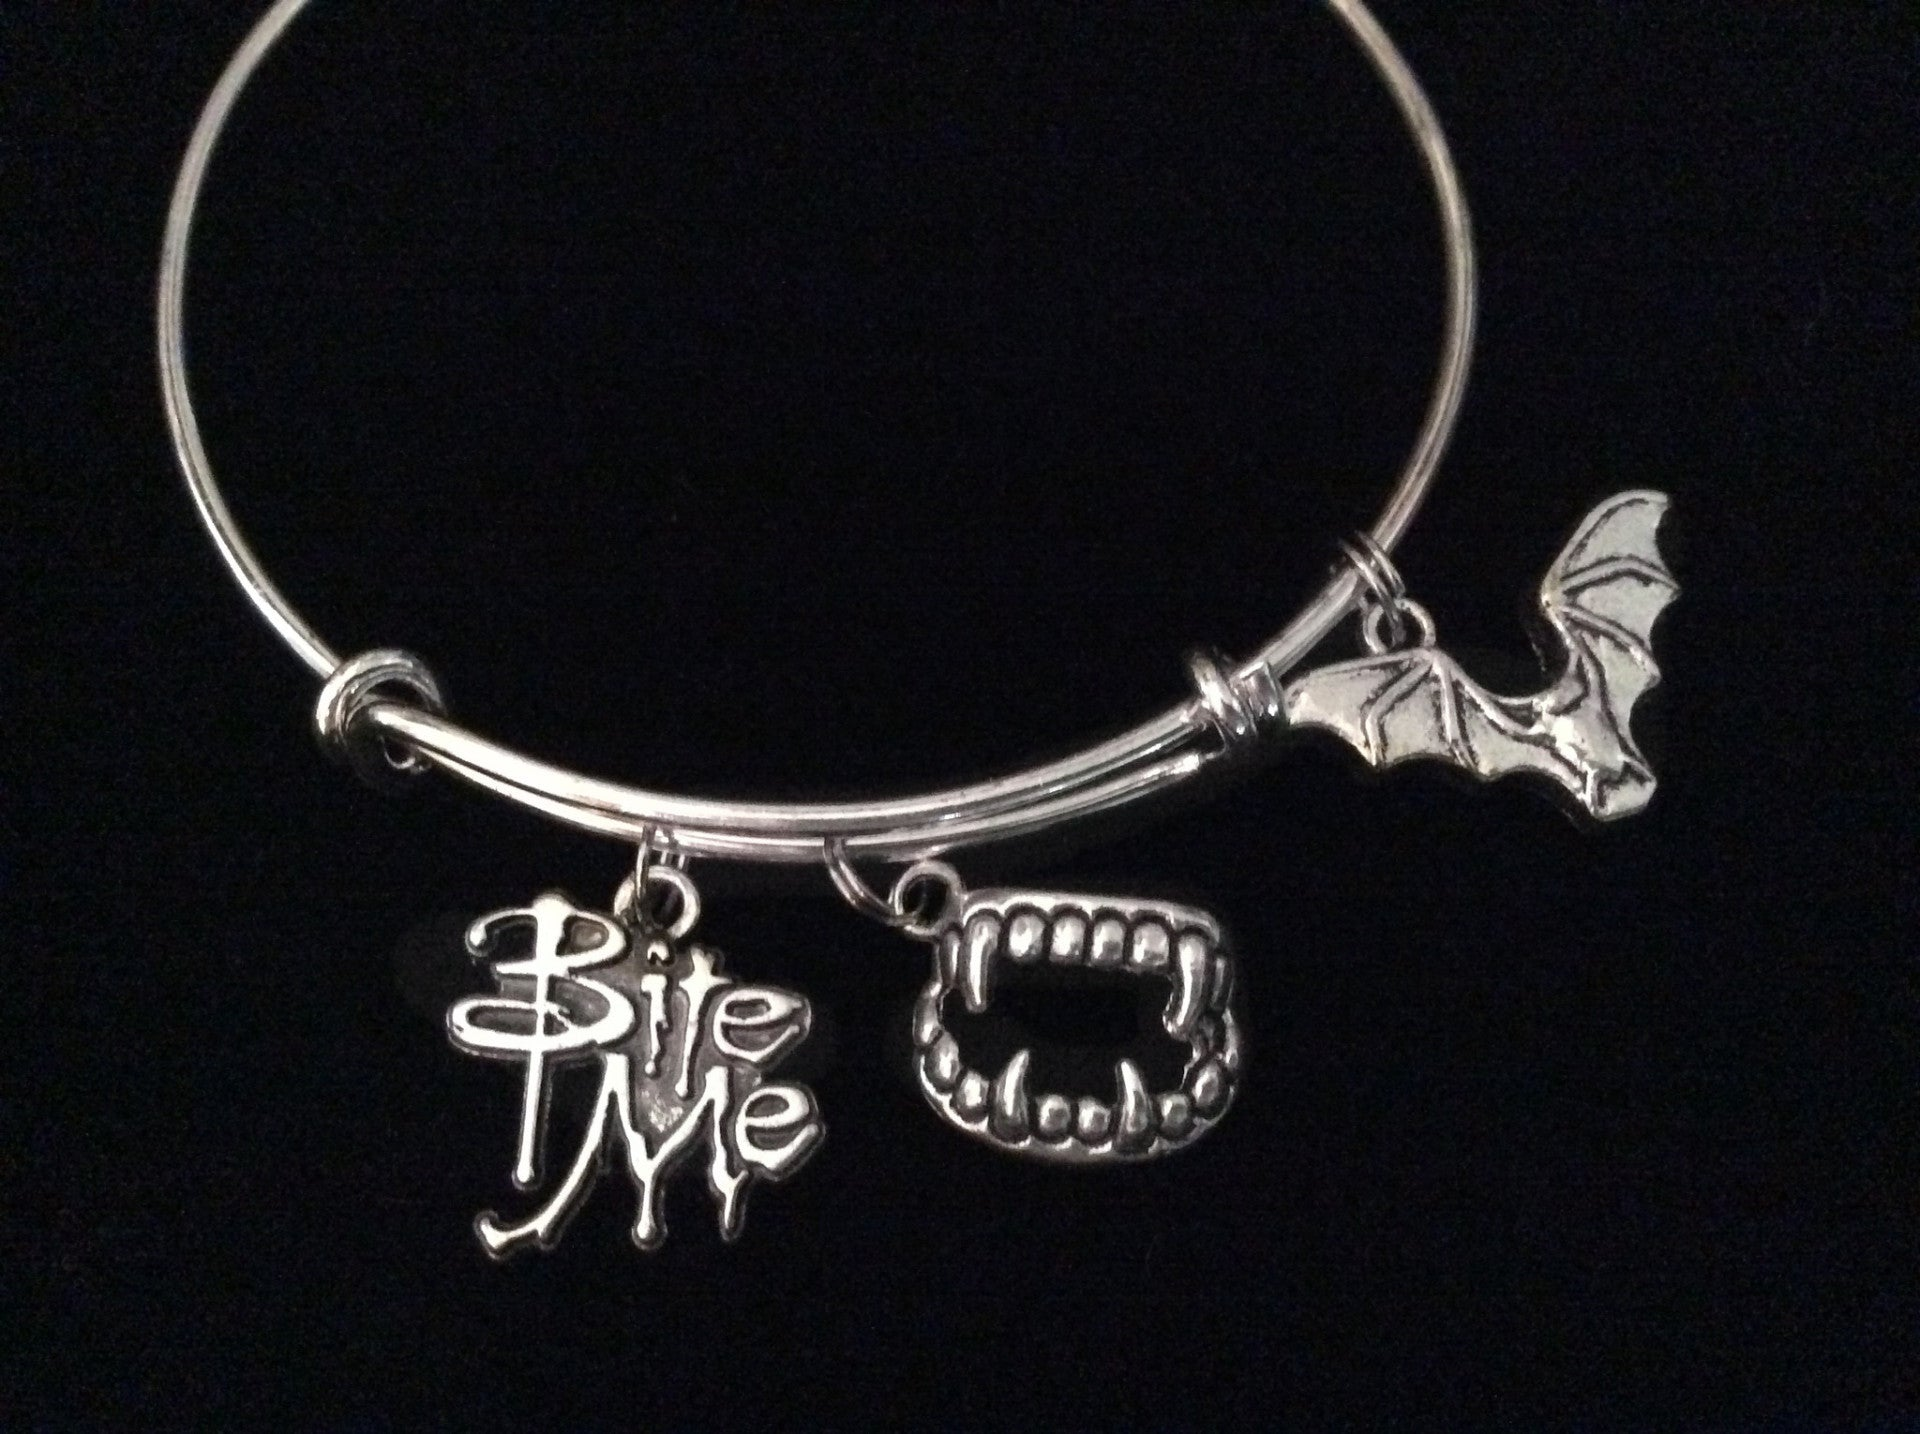 Bite Me Charm with Vampire Teeth Bat Silver Expandable Charm